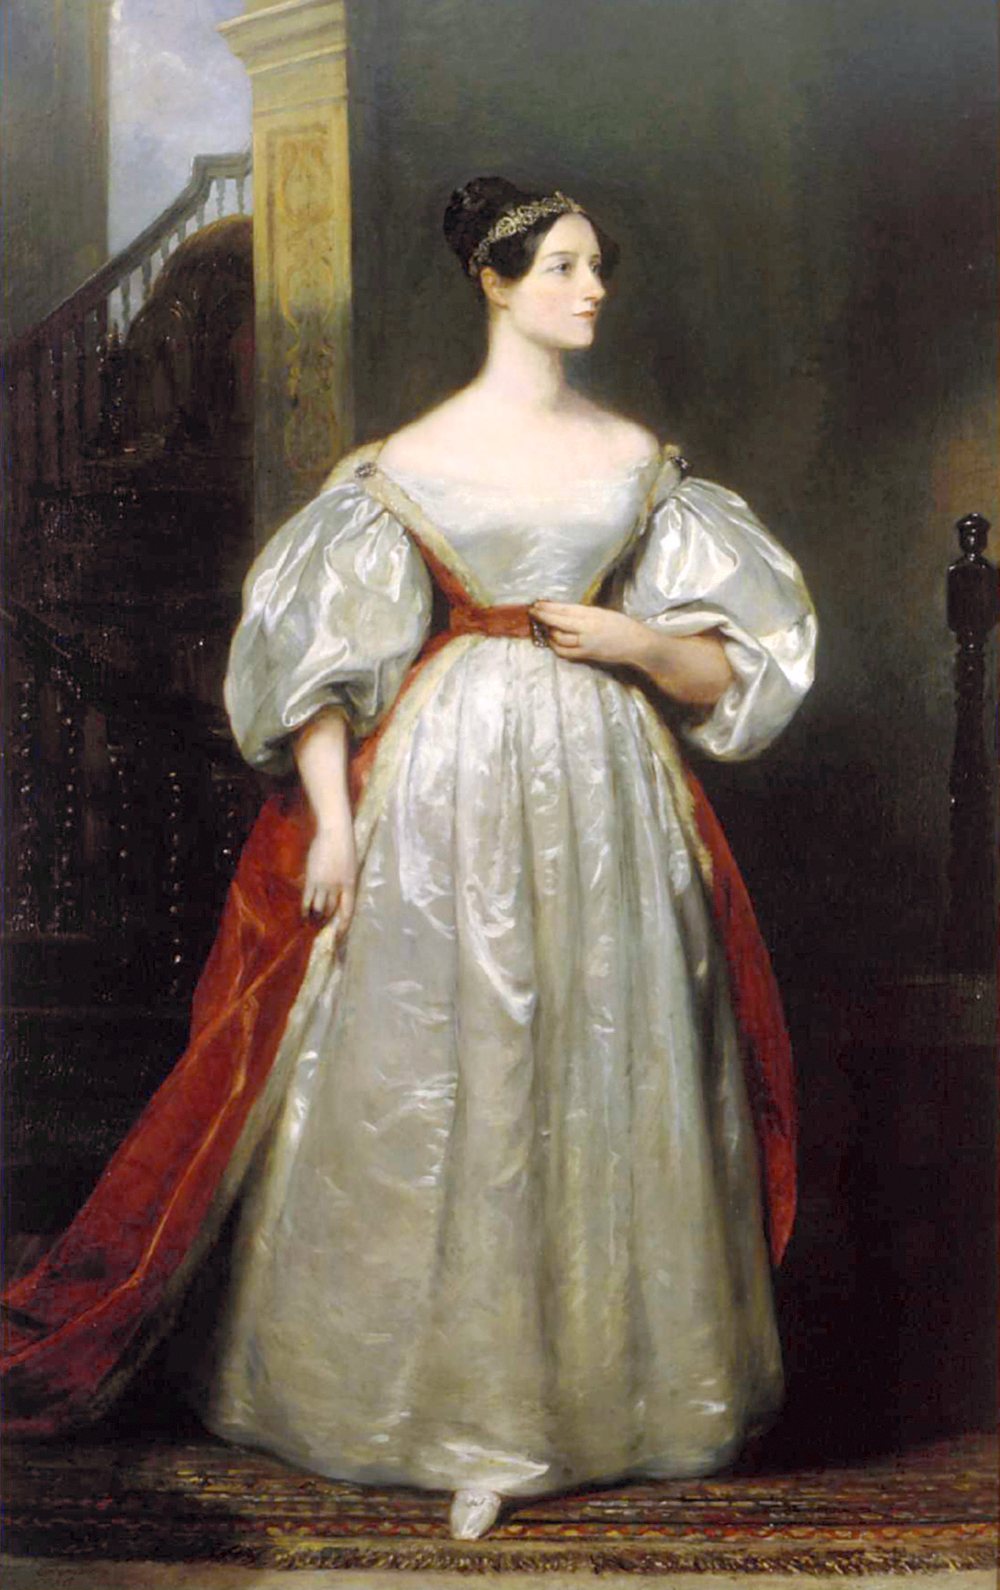 the life contributions and interests of augusta ada king noel countess of lovelace